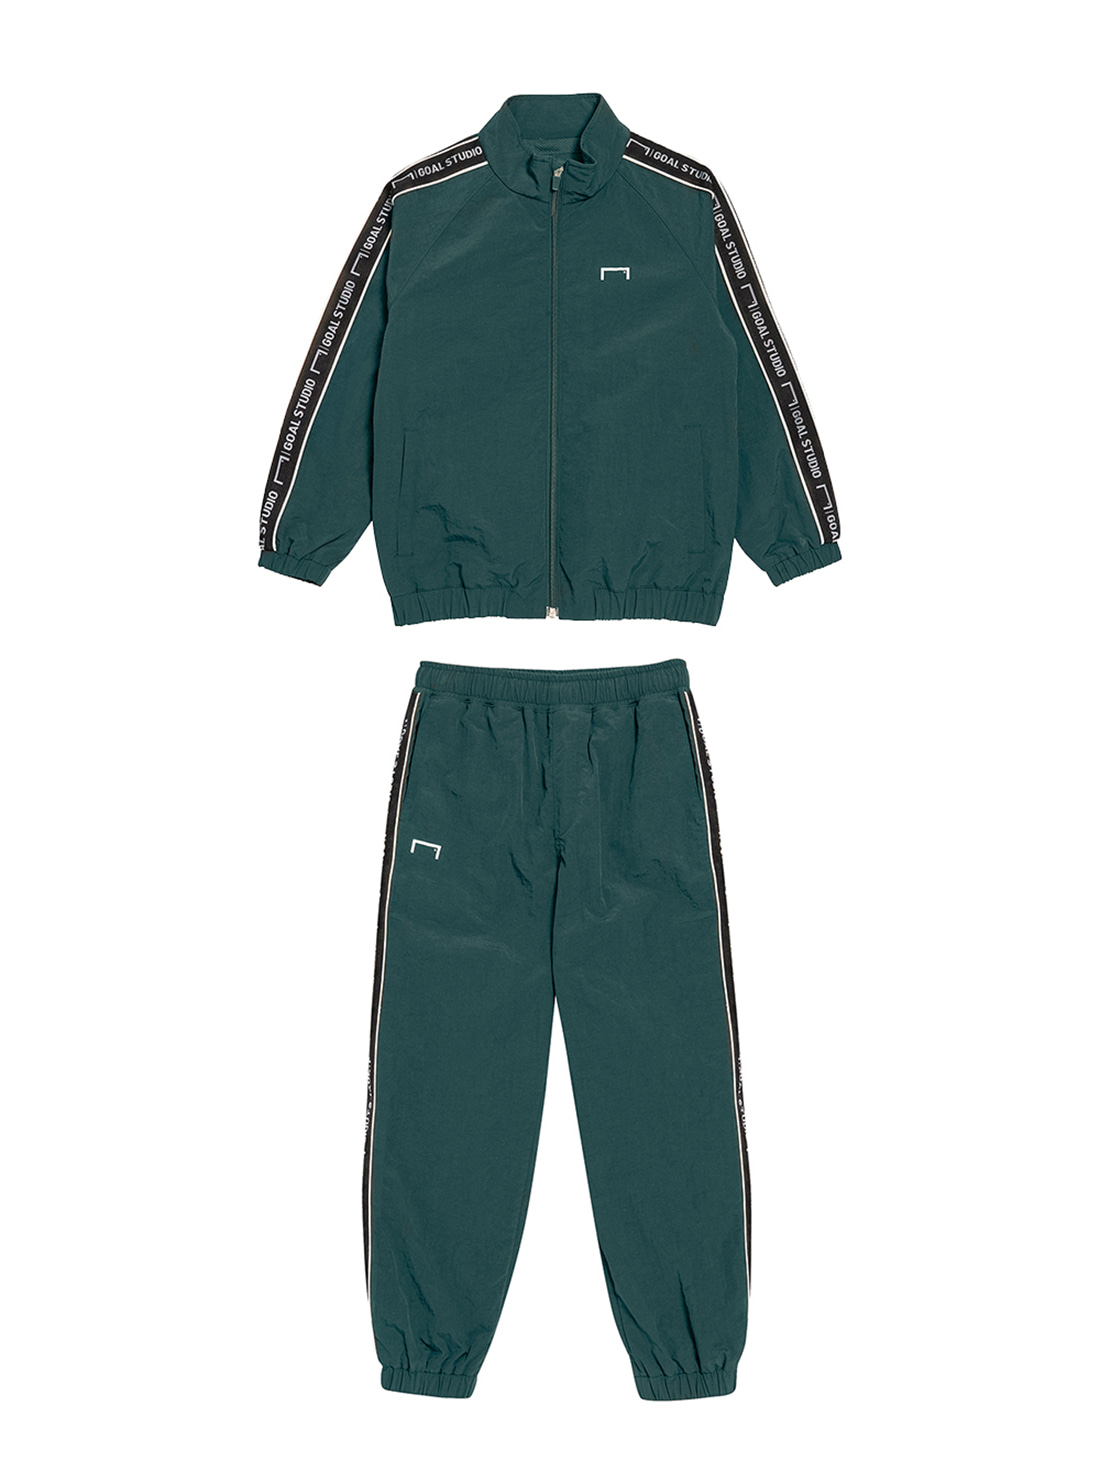 [10% OFF] (KIDS) SMALL LOGO TRACK JACKET & PANTS SET - DARK GREEN